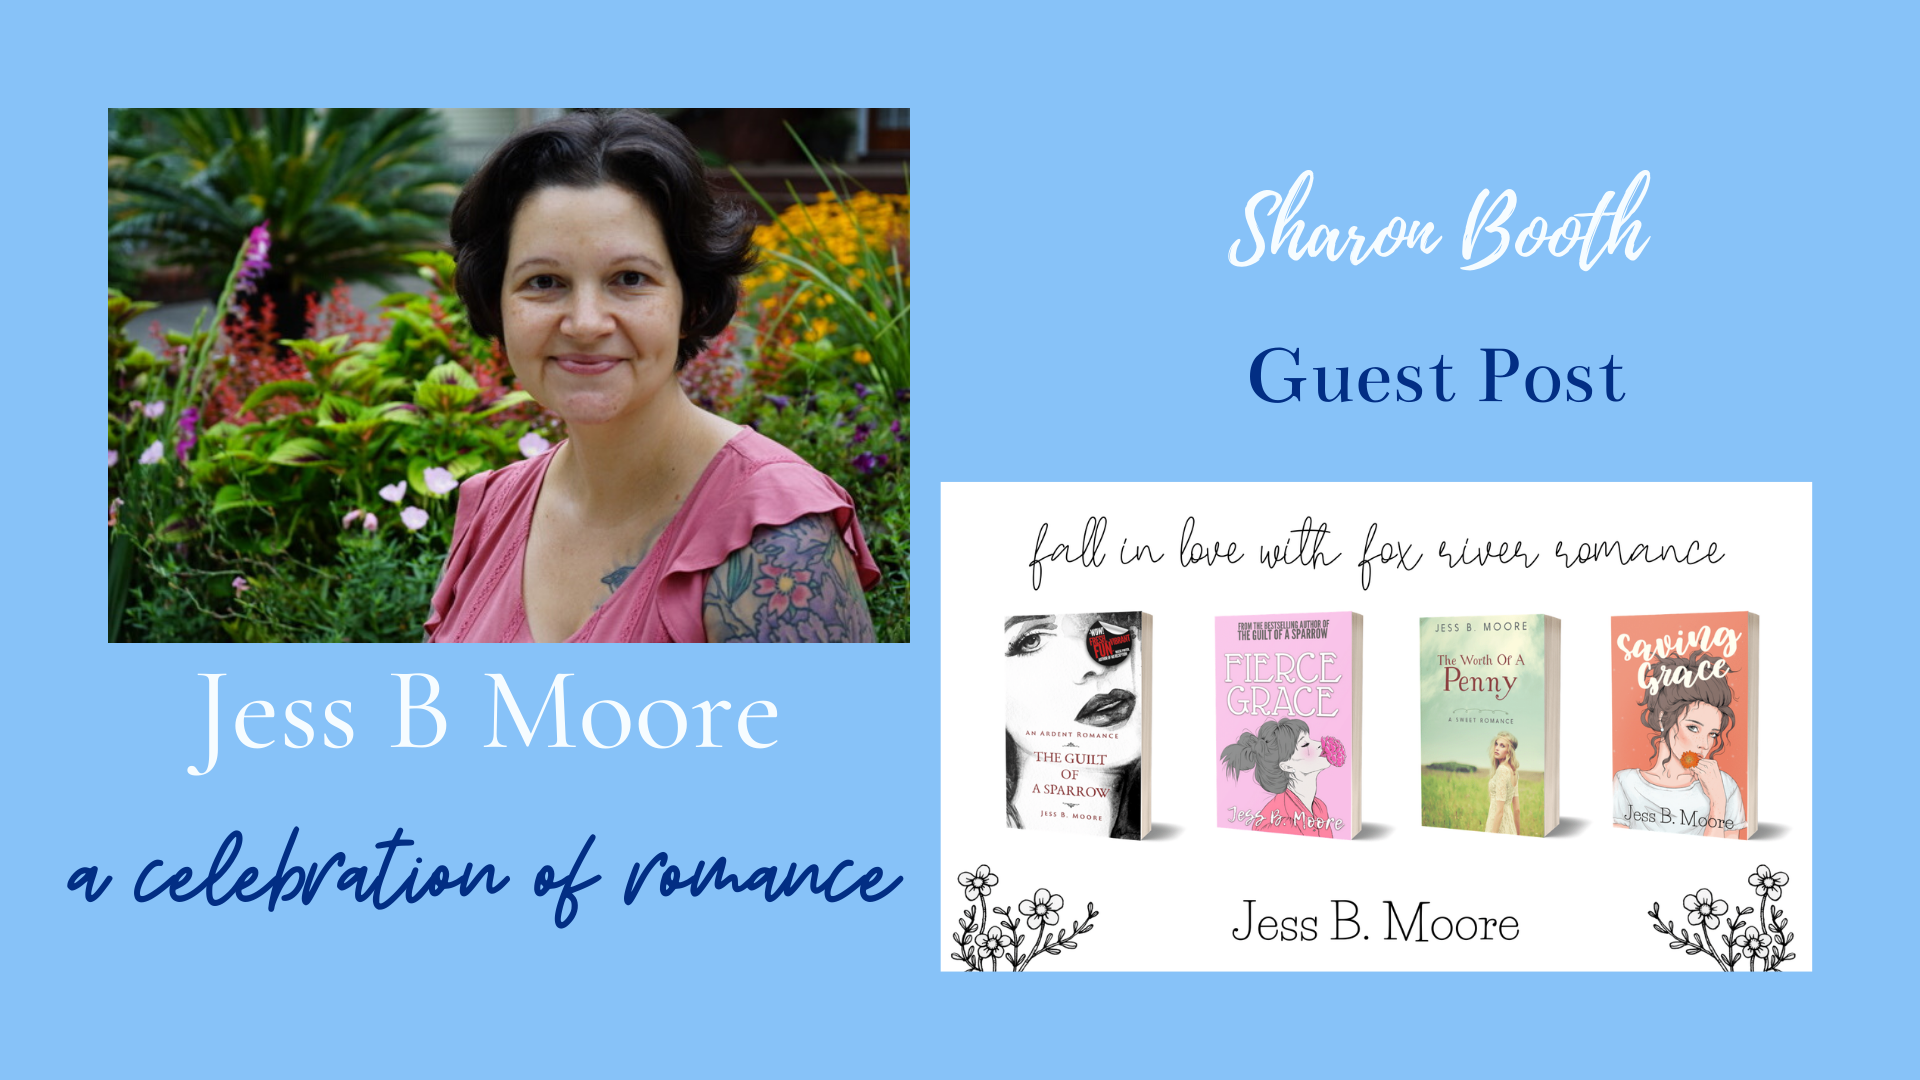 A Celebration of Romance by Jess B Moore